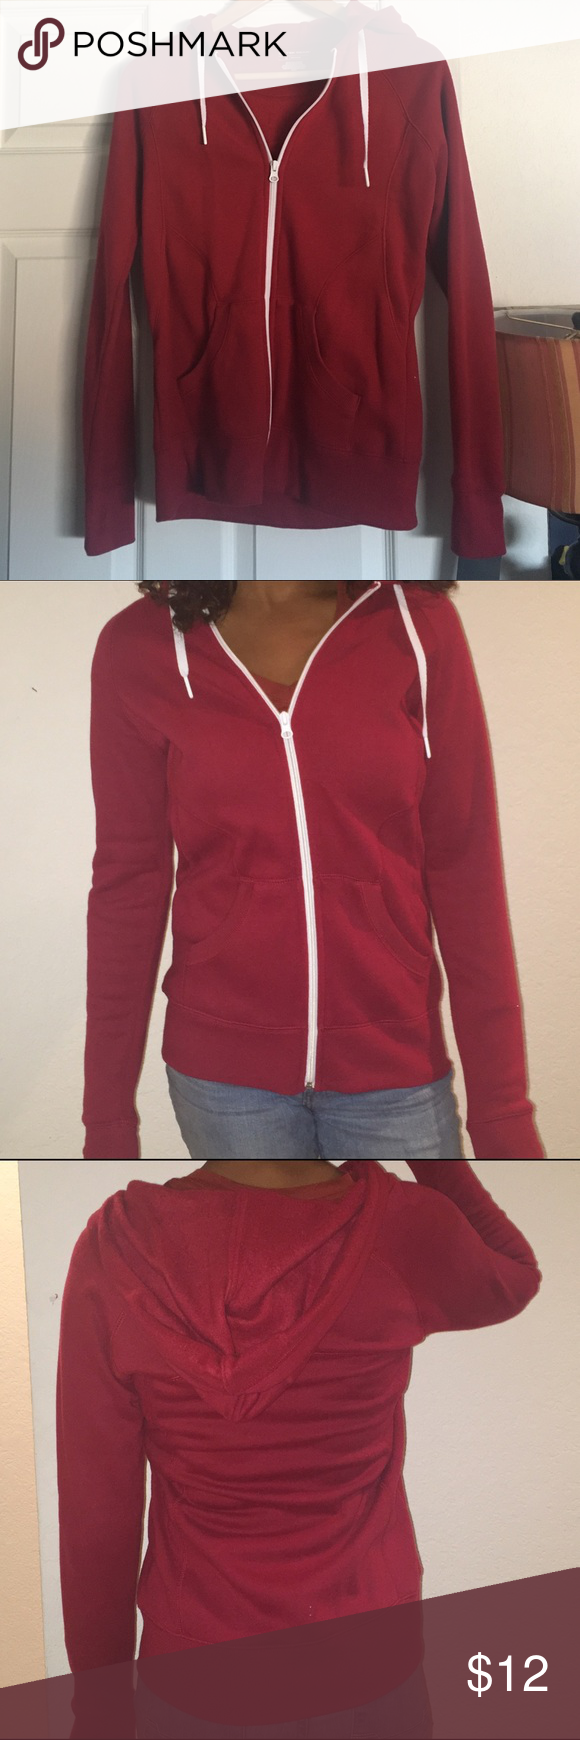 ✨New Red ZipUp Hoodie brand new red hoodies with a white zipper, in great condition, brand new never work with tags Jackets & Coats